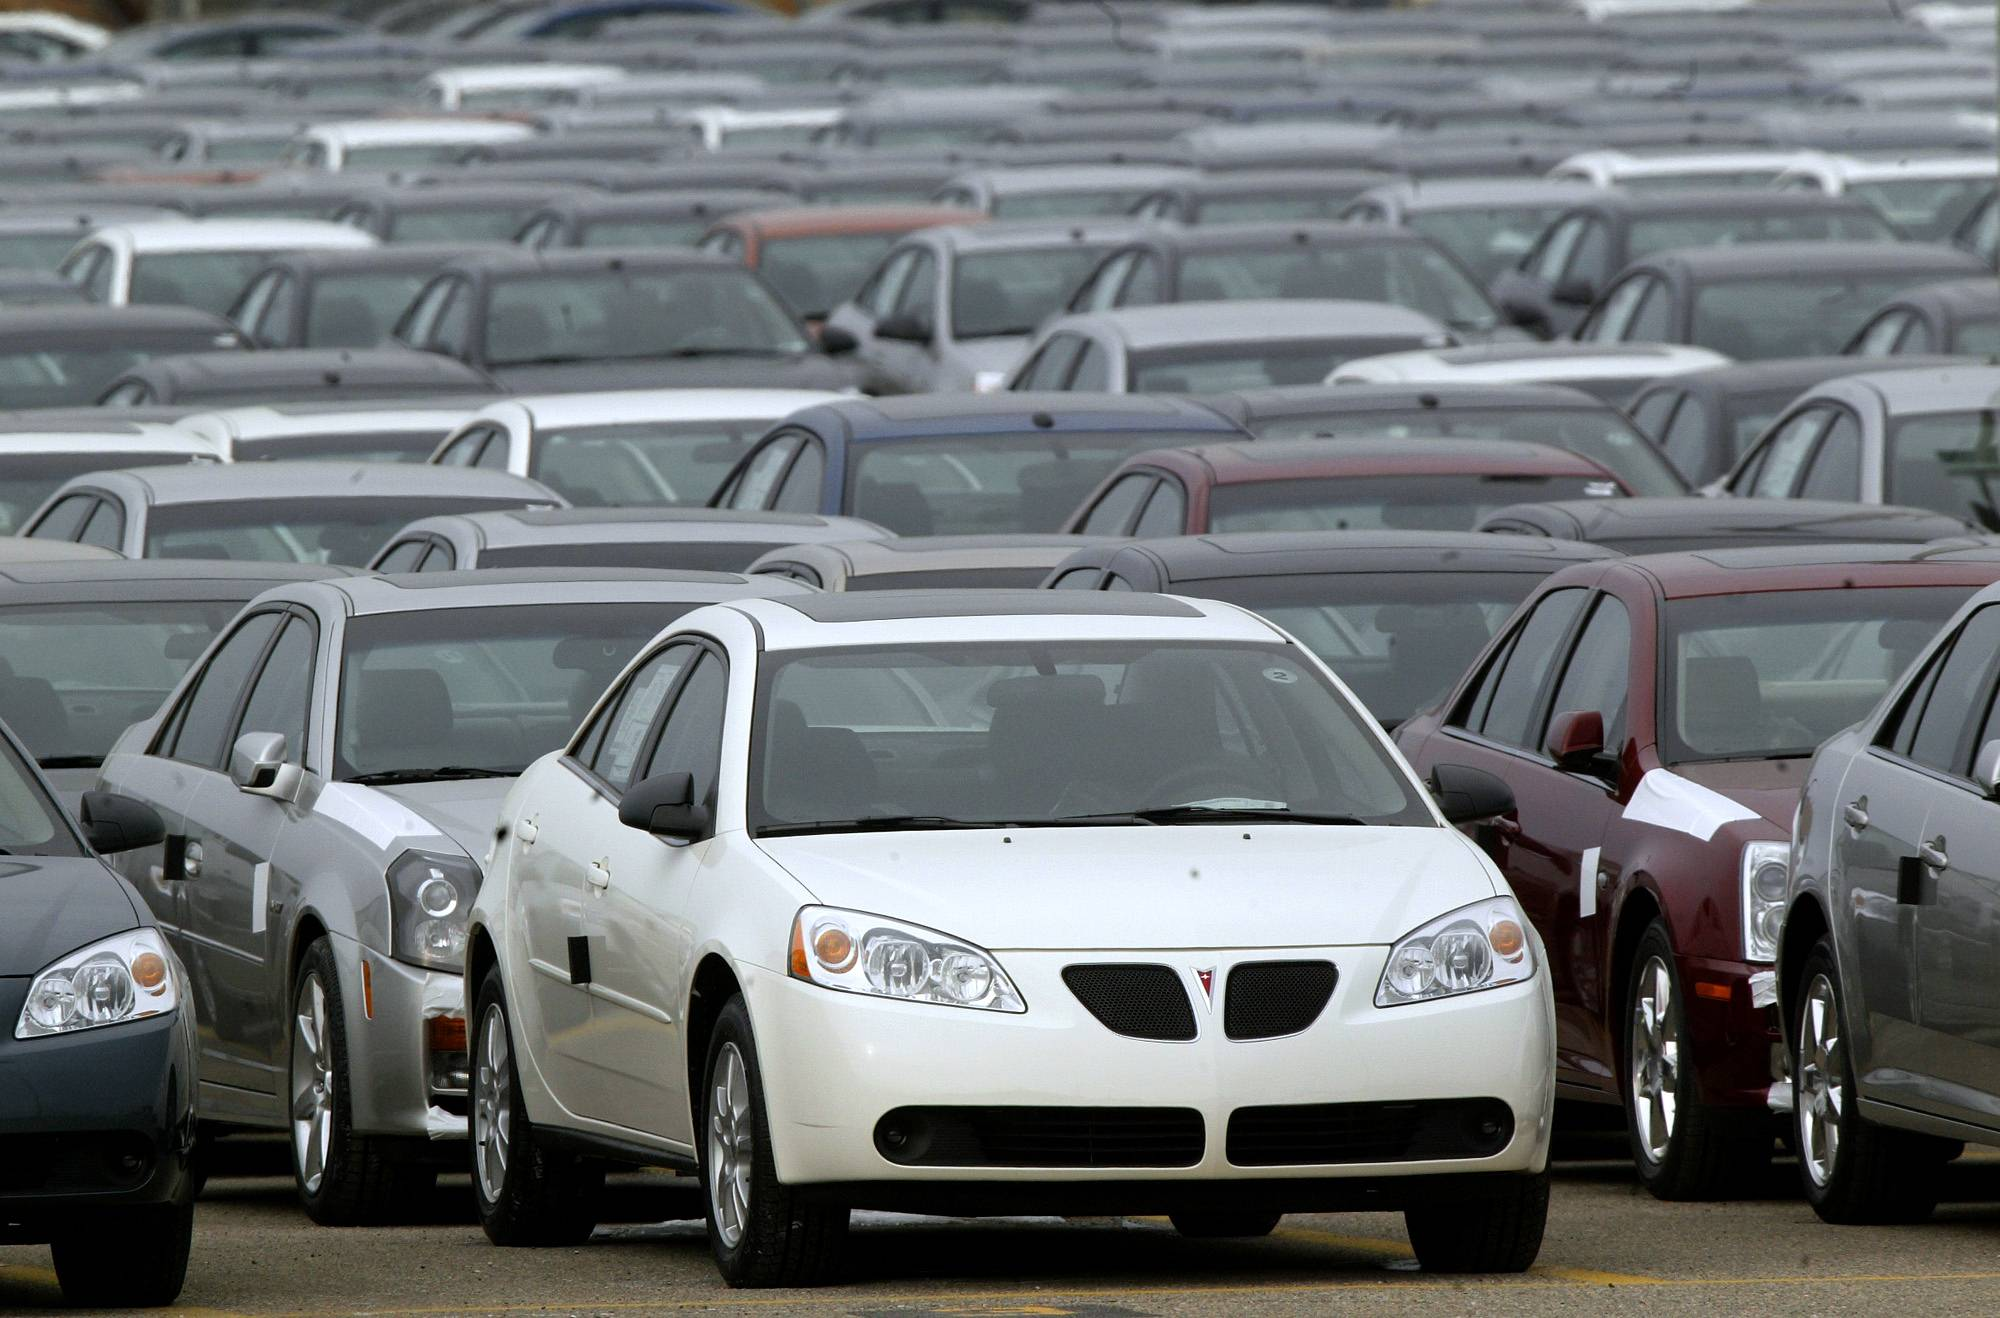 A Pontiac G6 is seen outside the General Motors Orion Assembly plant in Orion Township, Mich. General Motors is recalling 2.4 million vehicles in the U.S., including Pontiac G6's from the 2005-2008 model years, as part of a broader effort to resolve outstanding safety issues more quickly.